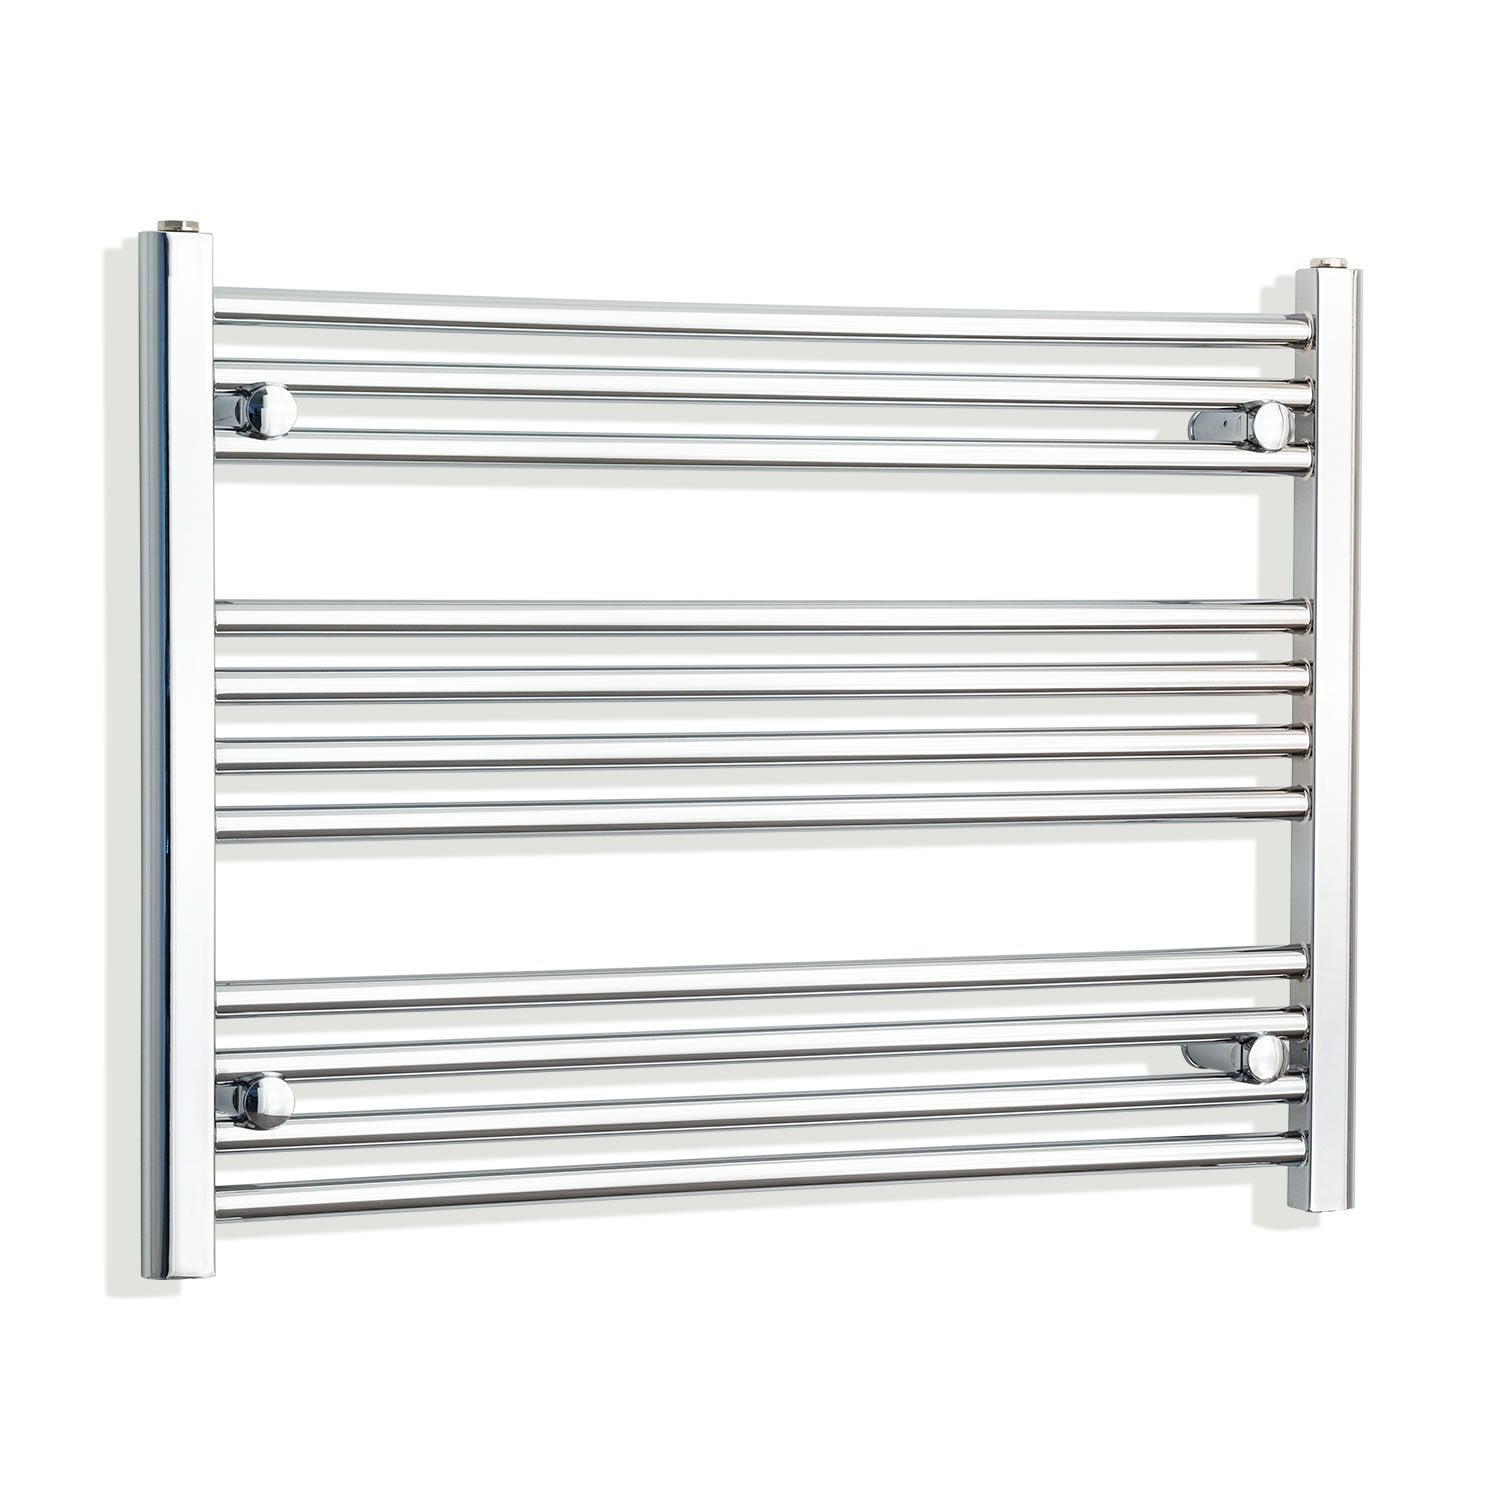 950mm Wide 600mm High Flat Chrome Heated Towel Rail Radiator HTR,Towel Rail Only